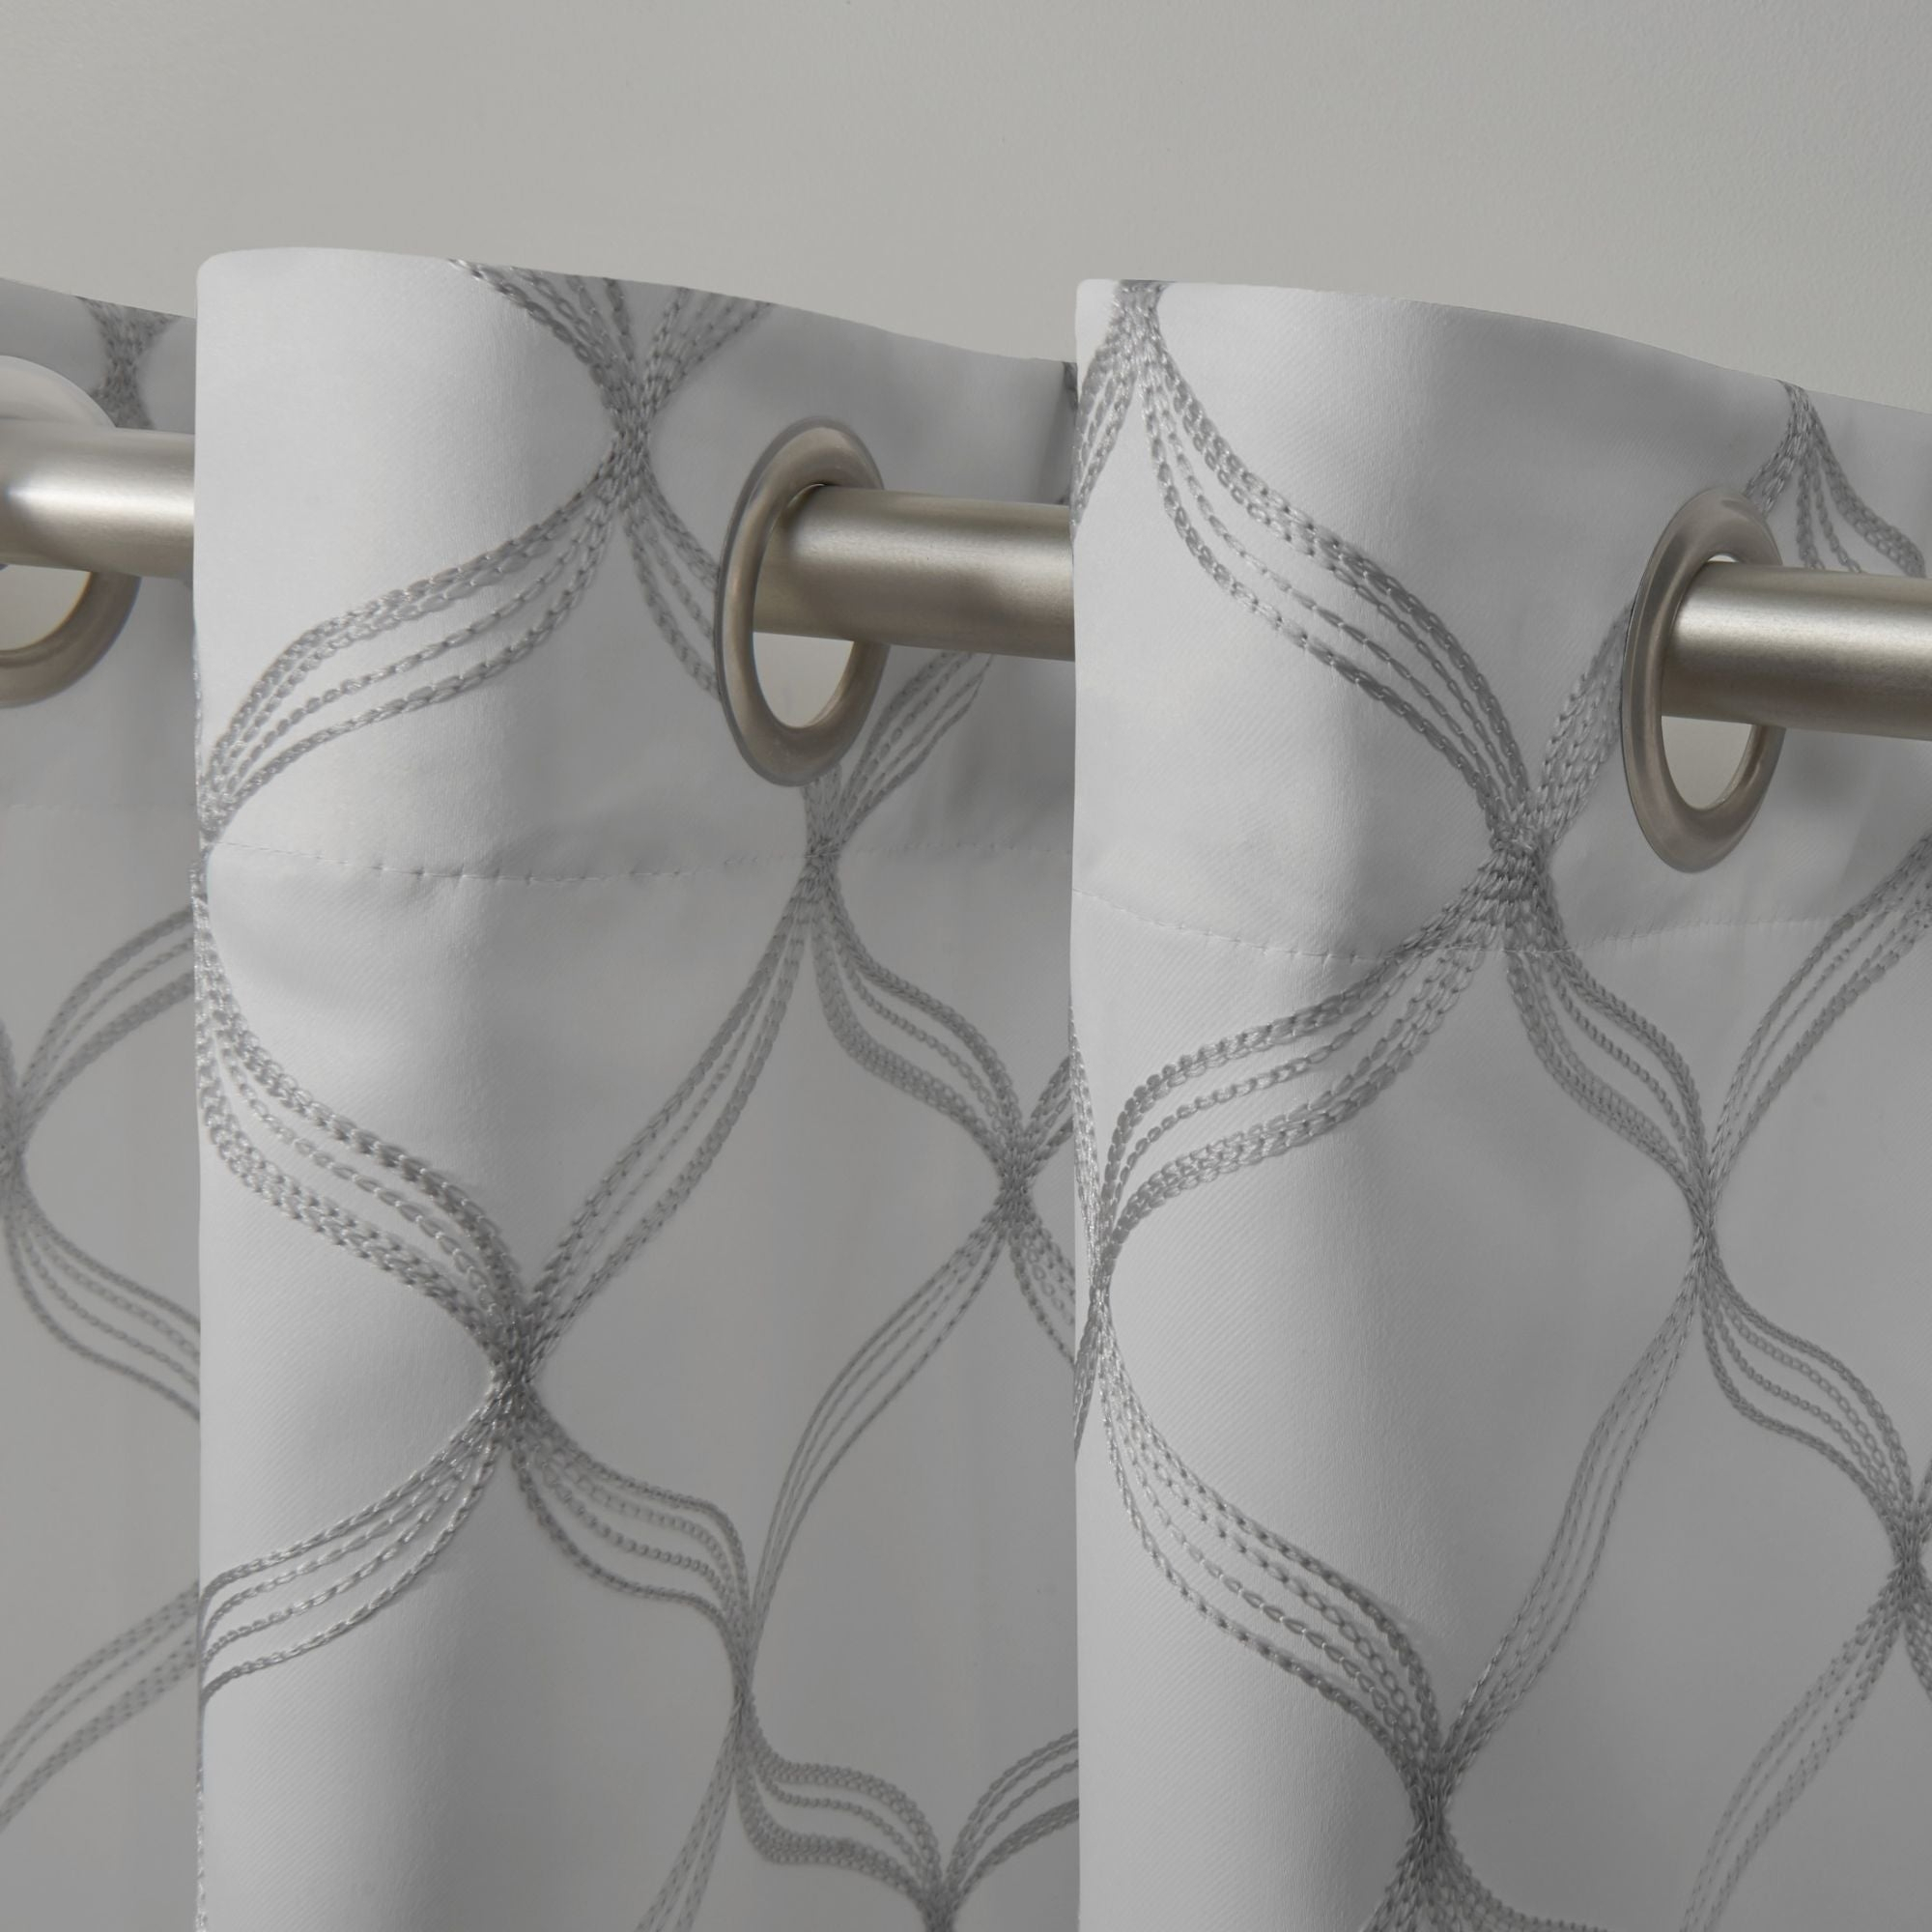 Ati Home Amelia Woven Blackout Grommet Top Curtain Panel Pair Inside Woven Blackout Grommet Top Curtain Panel Pairs (View 14 of 30)